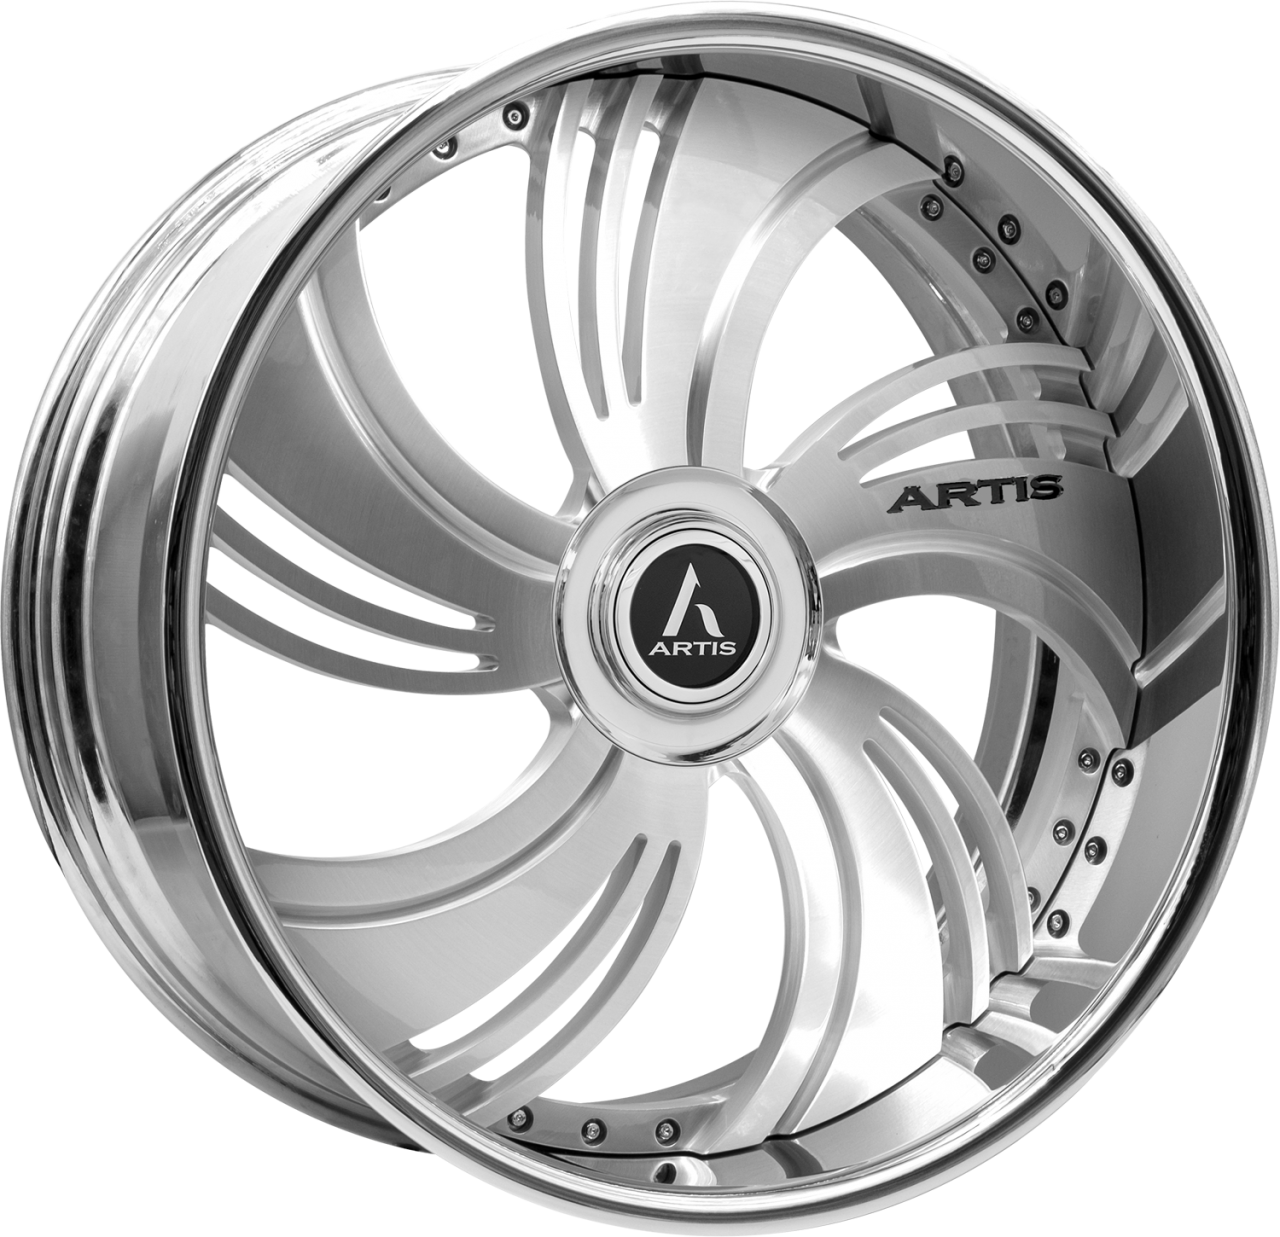 Artis Forged Avenue wheel with Brushed with XL Floater Cap finish